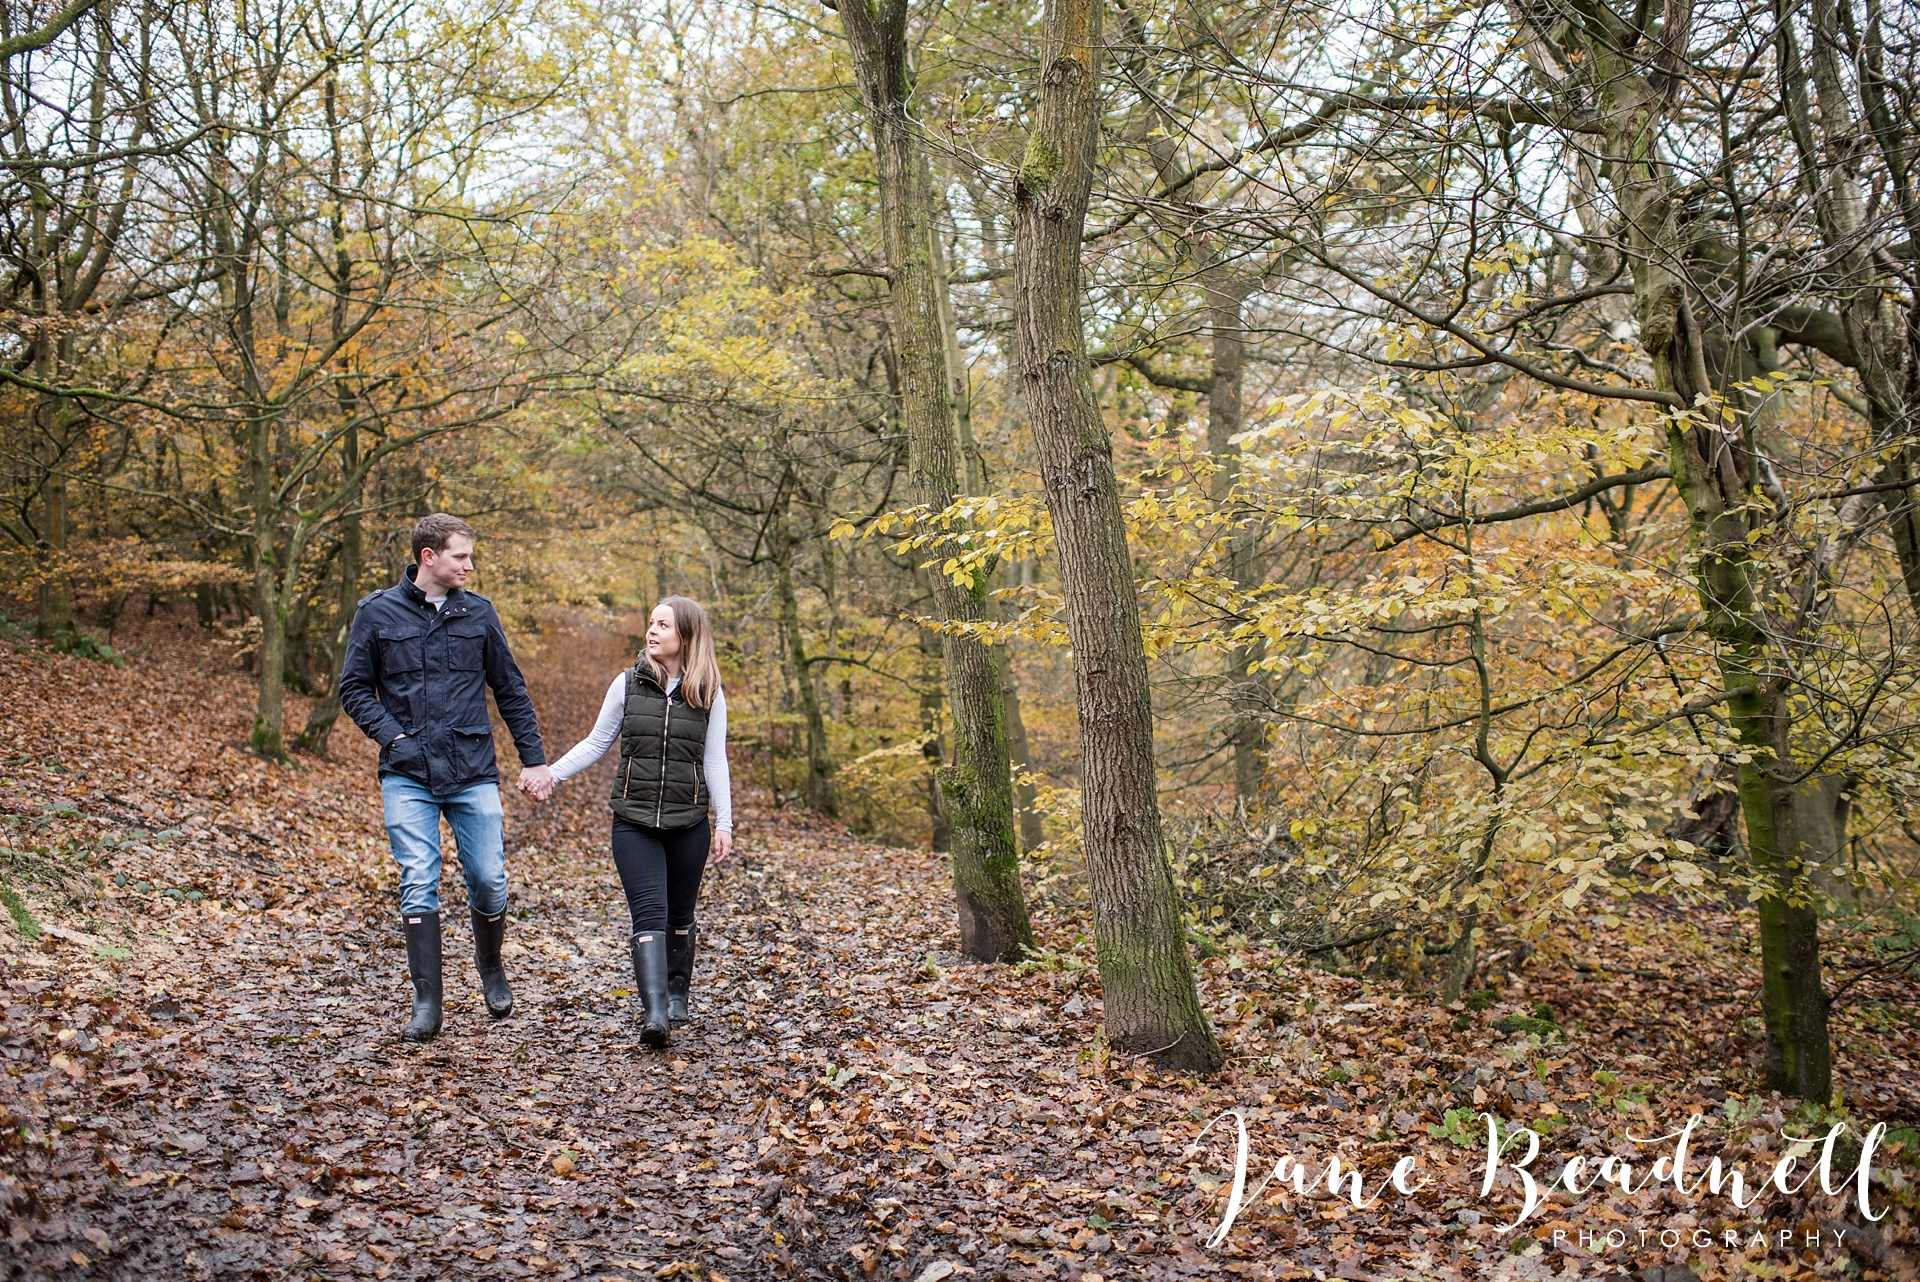 engagement-shoot-yorkshire-wedding-photographer-jane-beadnell-photography-uk-and-destination-wedding-photographer-engagement-shoot_0041